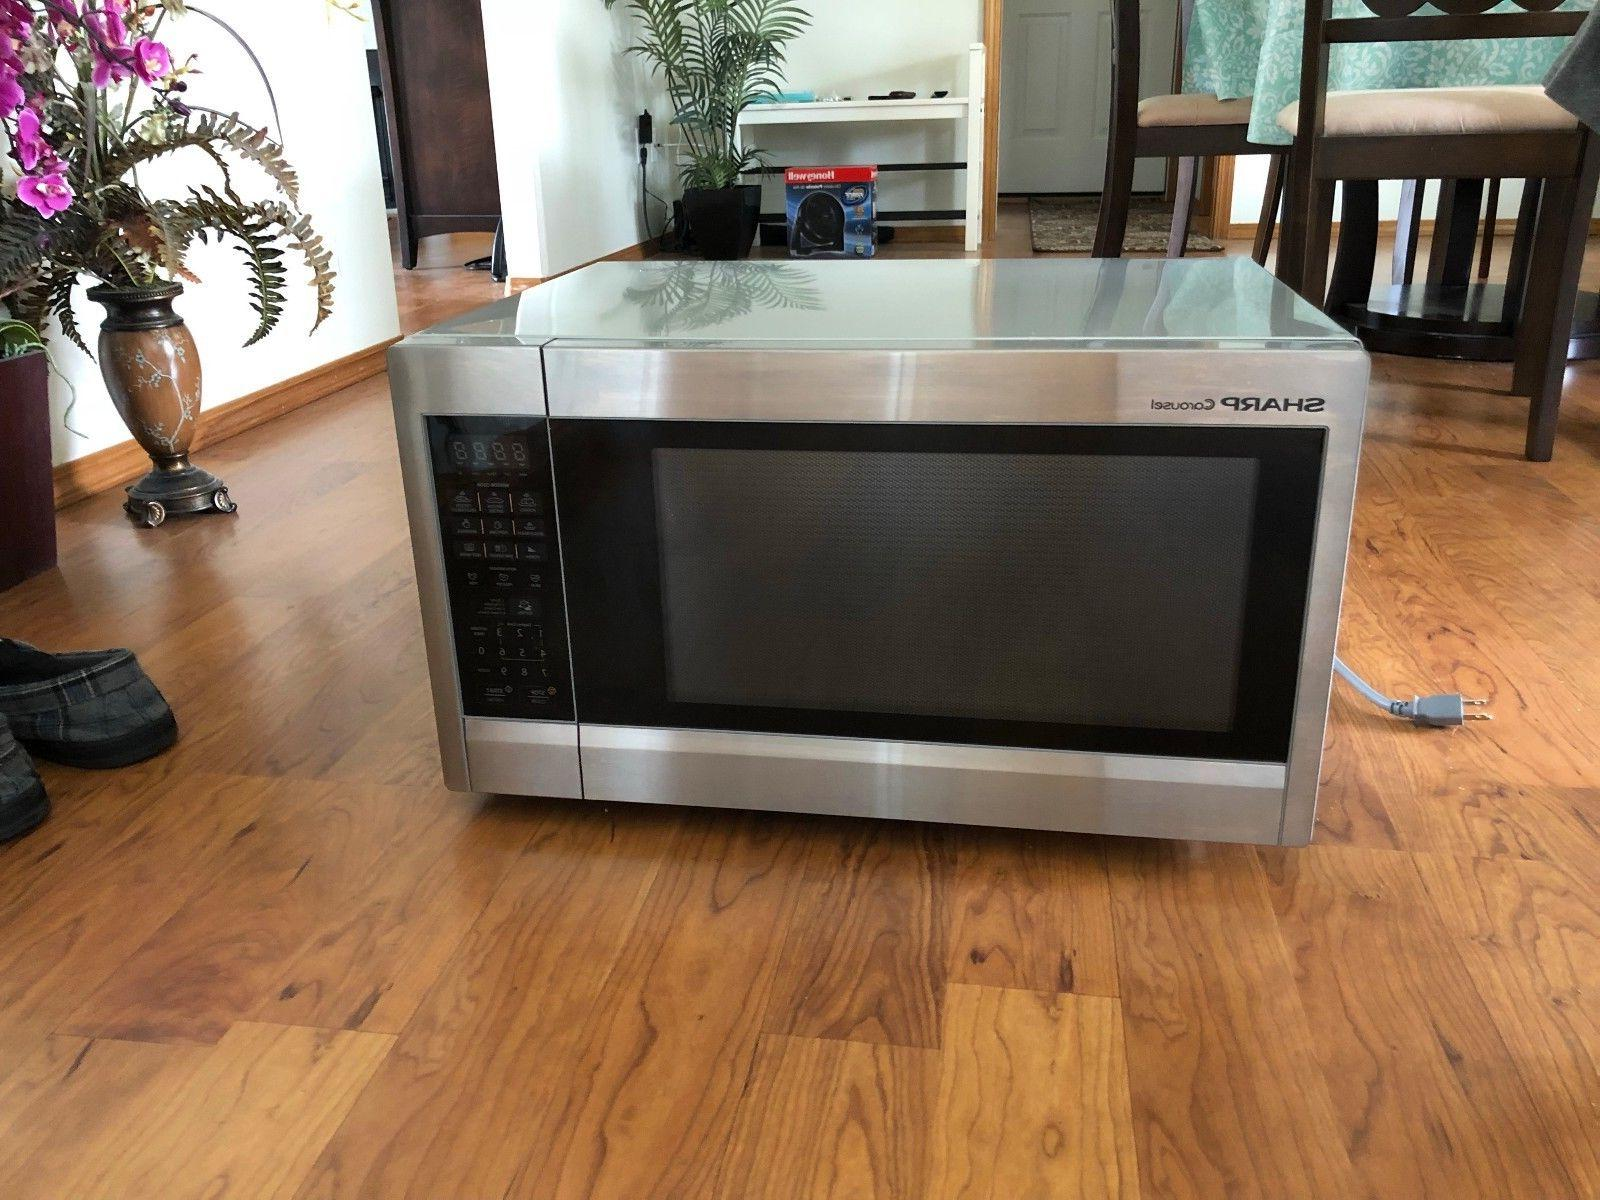 Sharp ZR651ZS 2.2 Cu Ft Microwave Stainless Steel